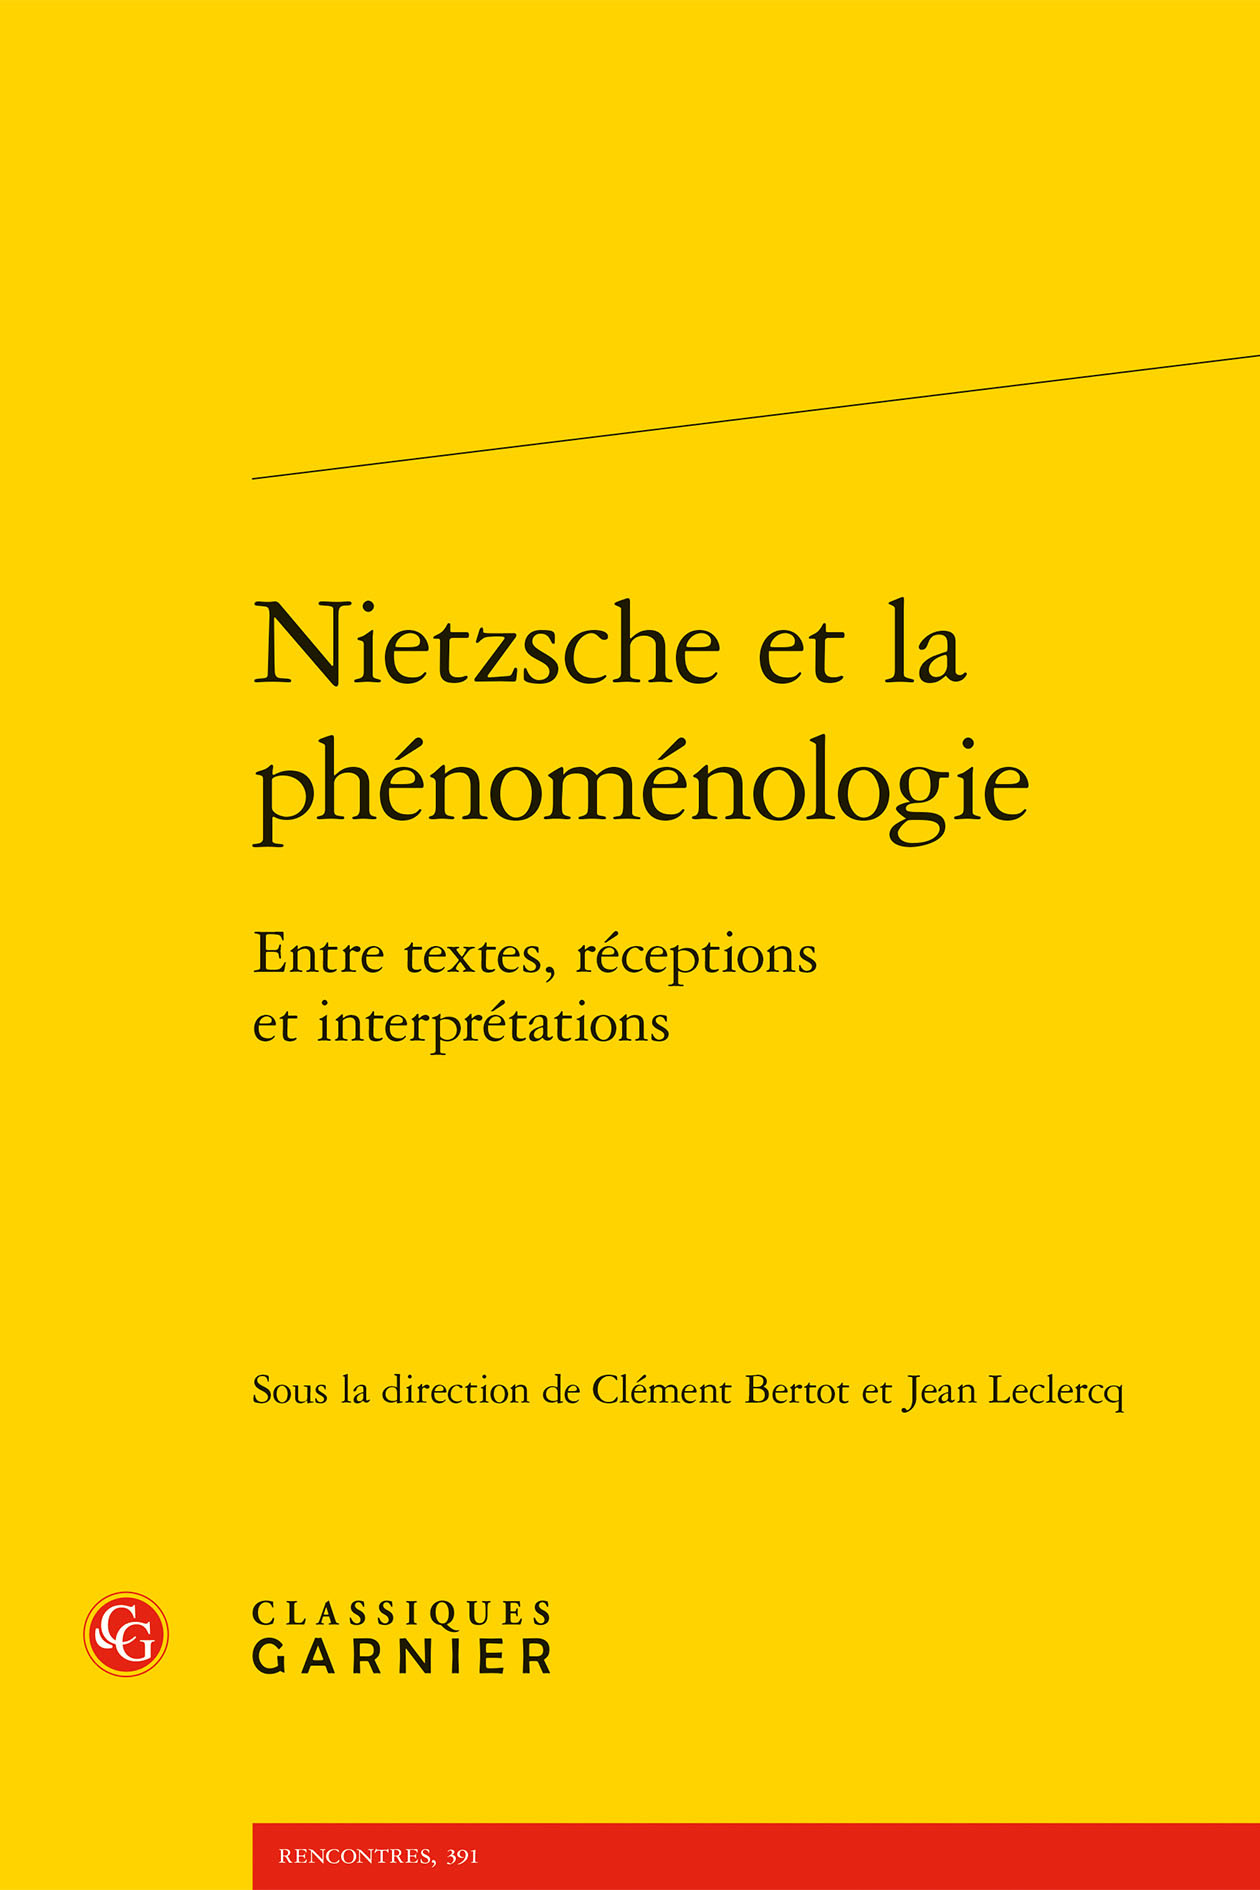 NIETZSCHE ET LA PHENOMENOLOGIE - ENTRE TEXTES, RECEPTIONS ET INTERPRETATIONS